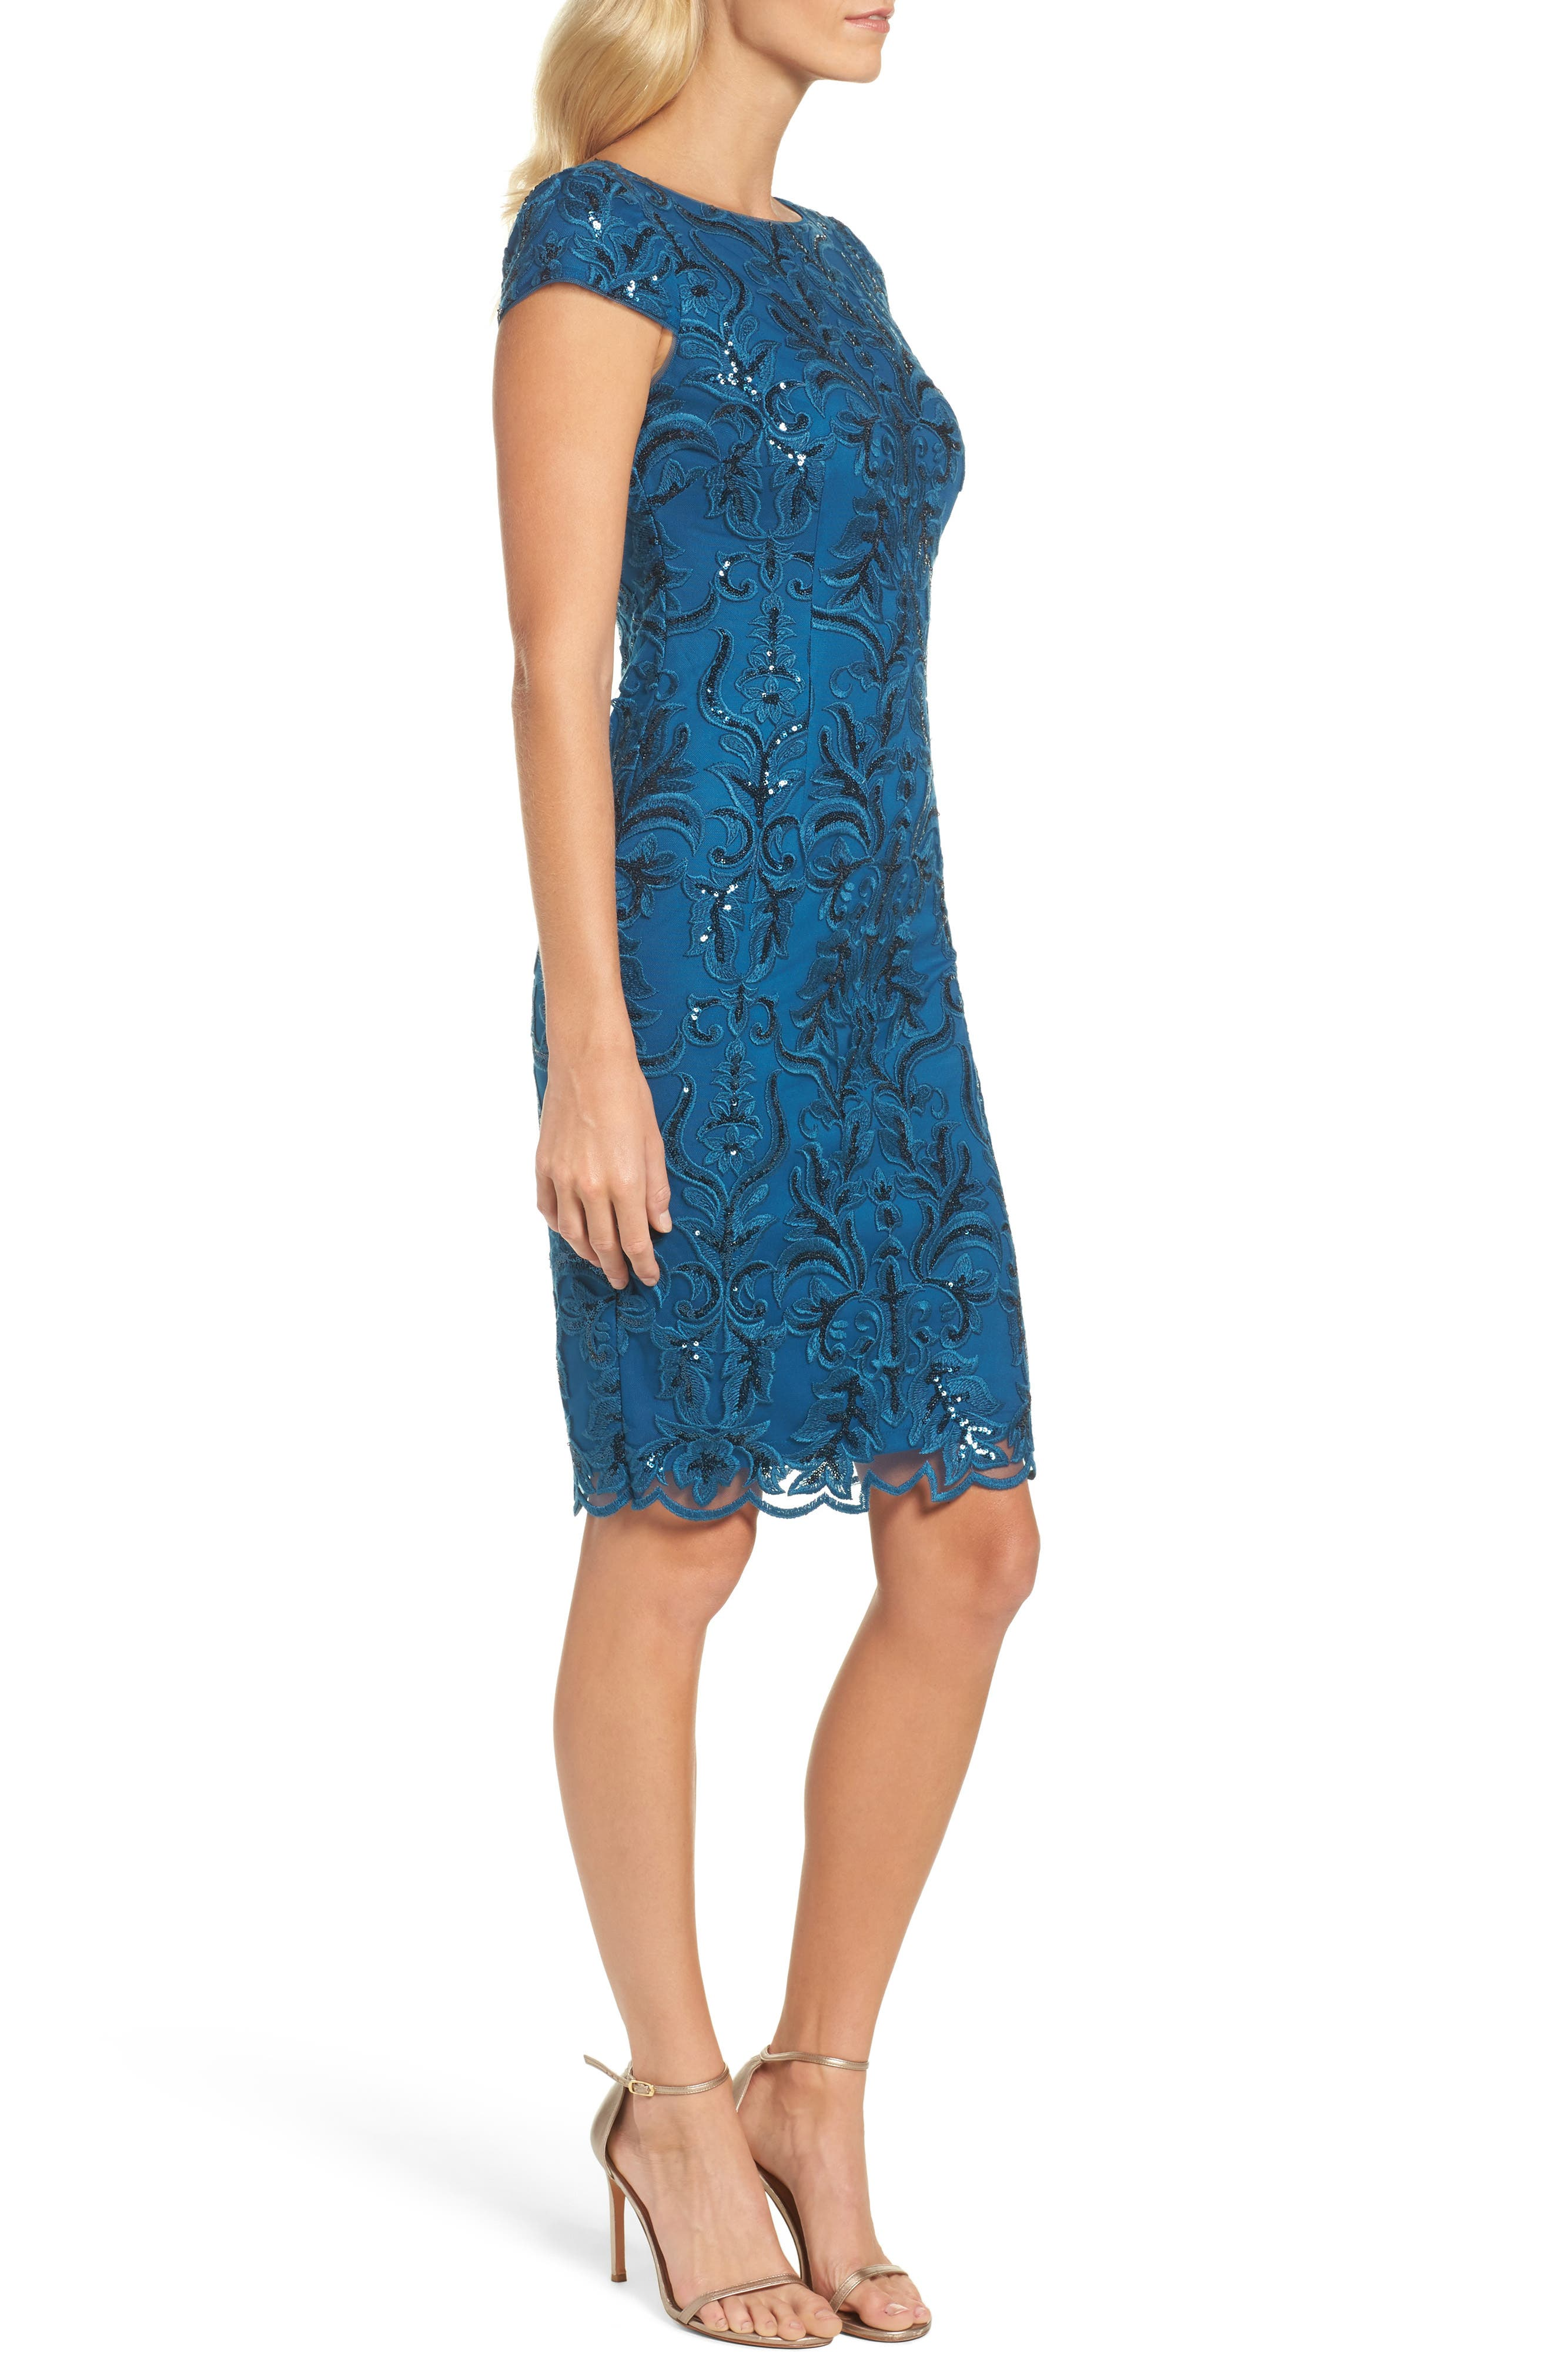 Sequin Embroidered Sheath Dress,                             Alternate thumbnail 3, color,                             Evening Sky